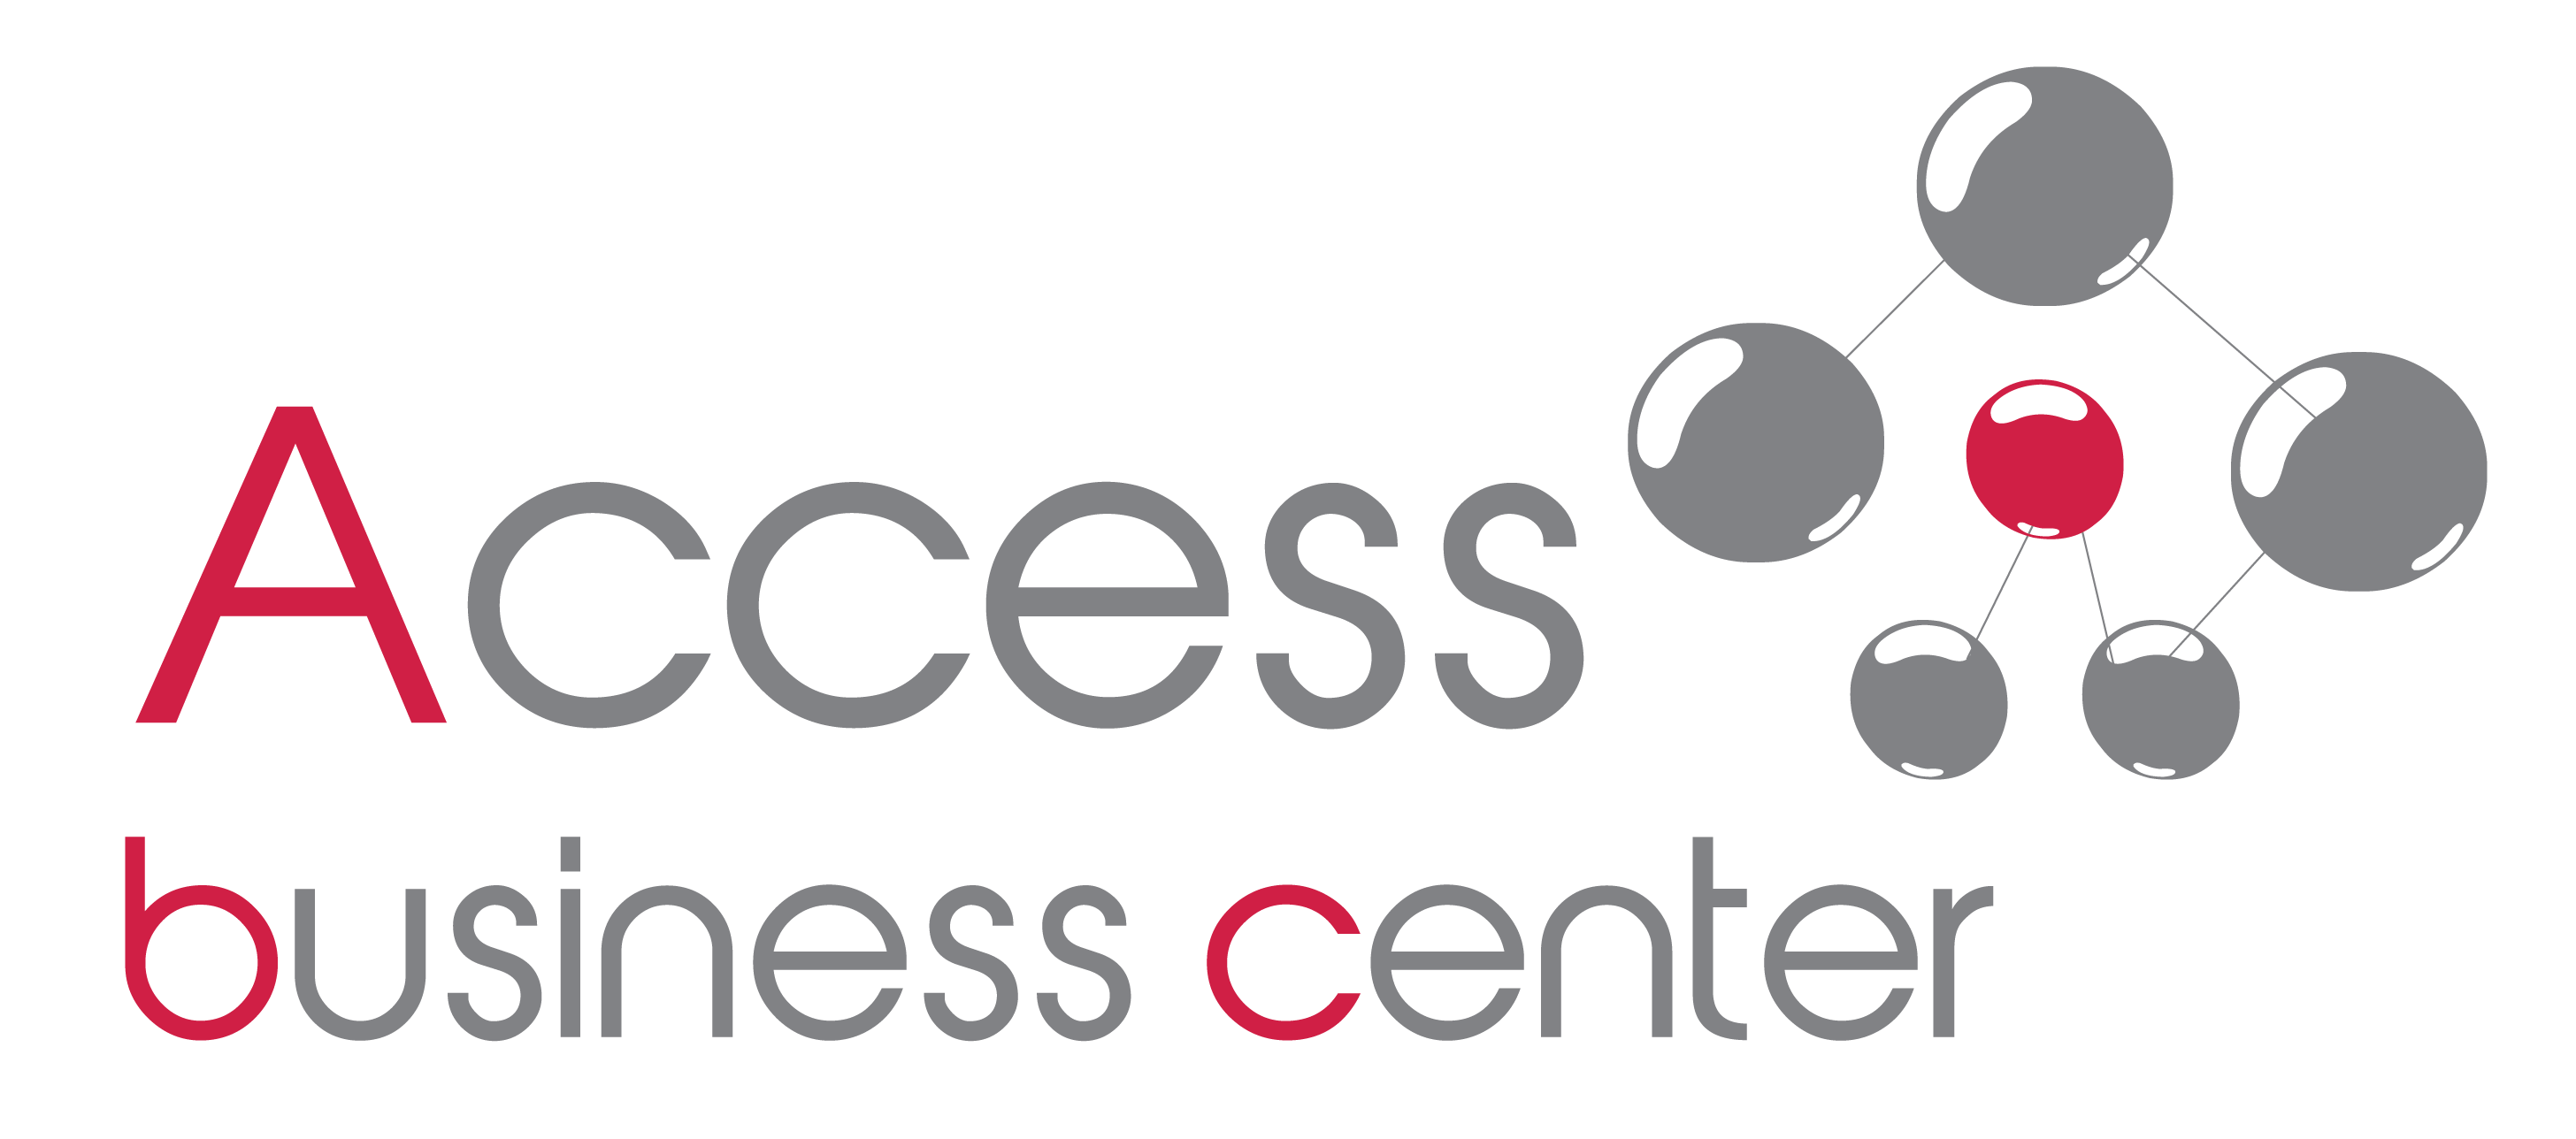 AccessBusinessCenter